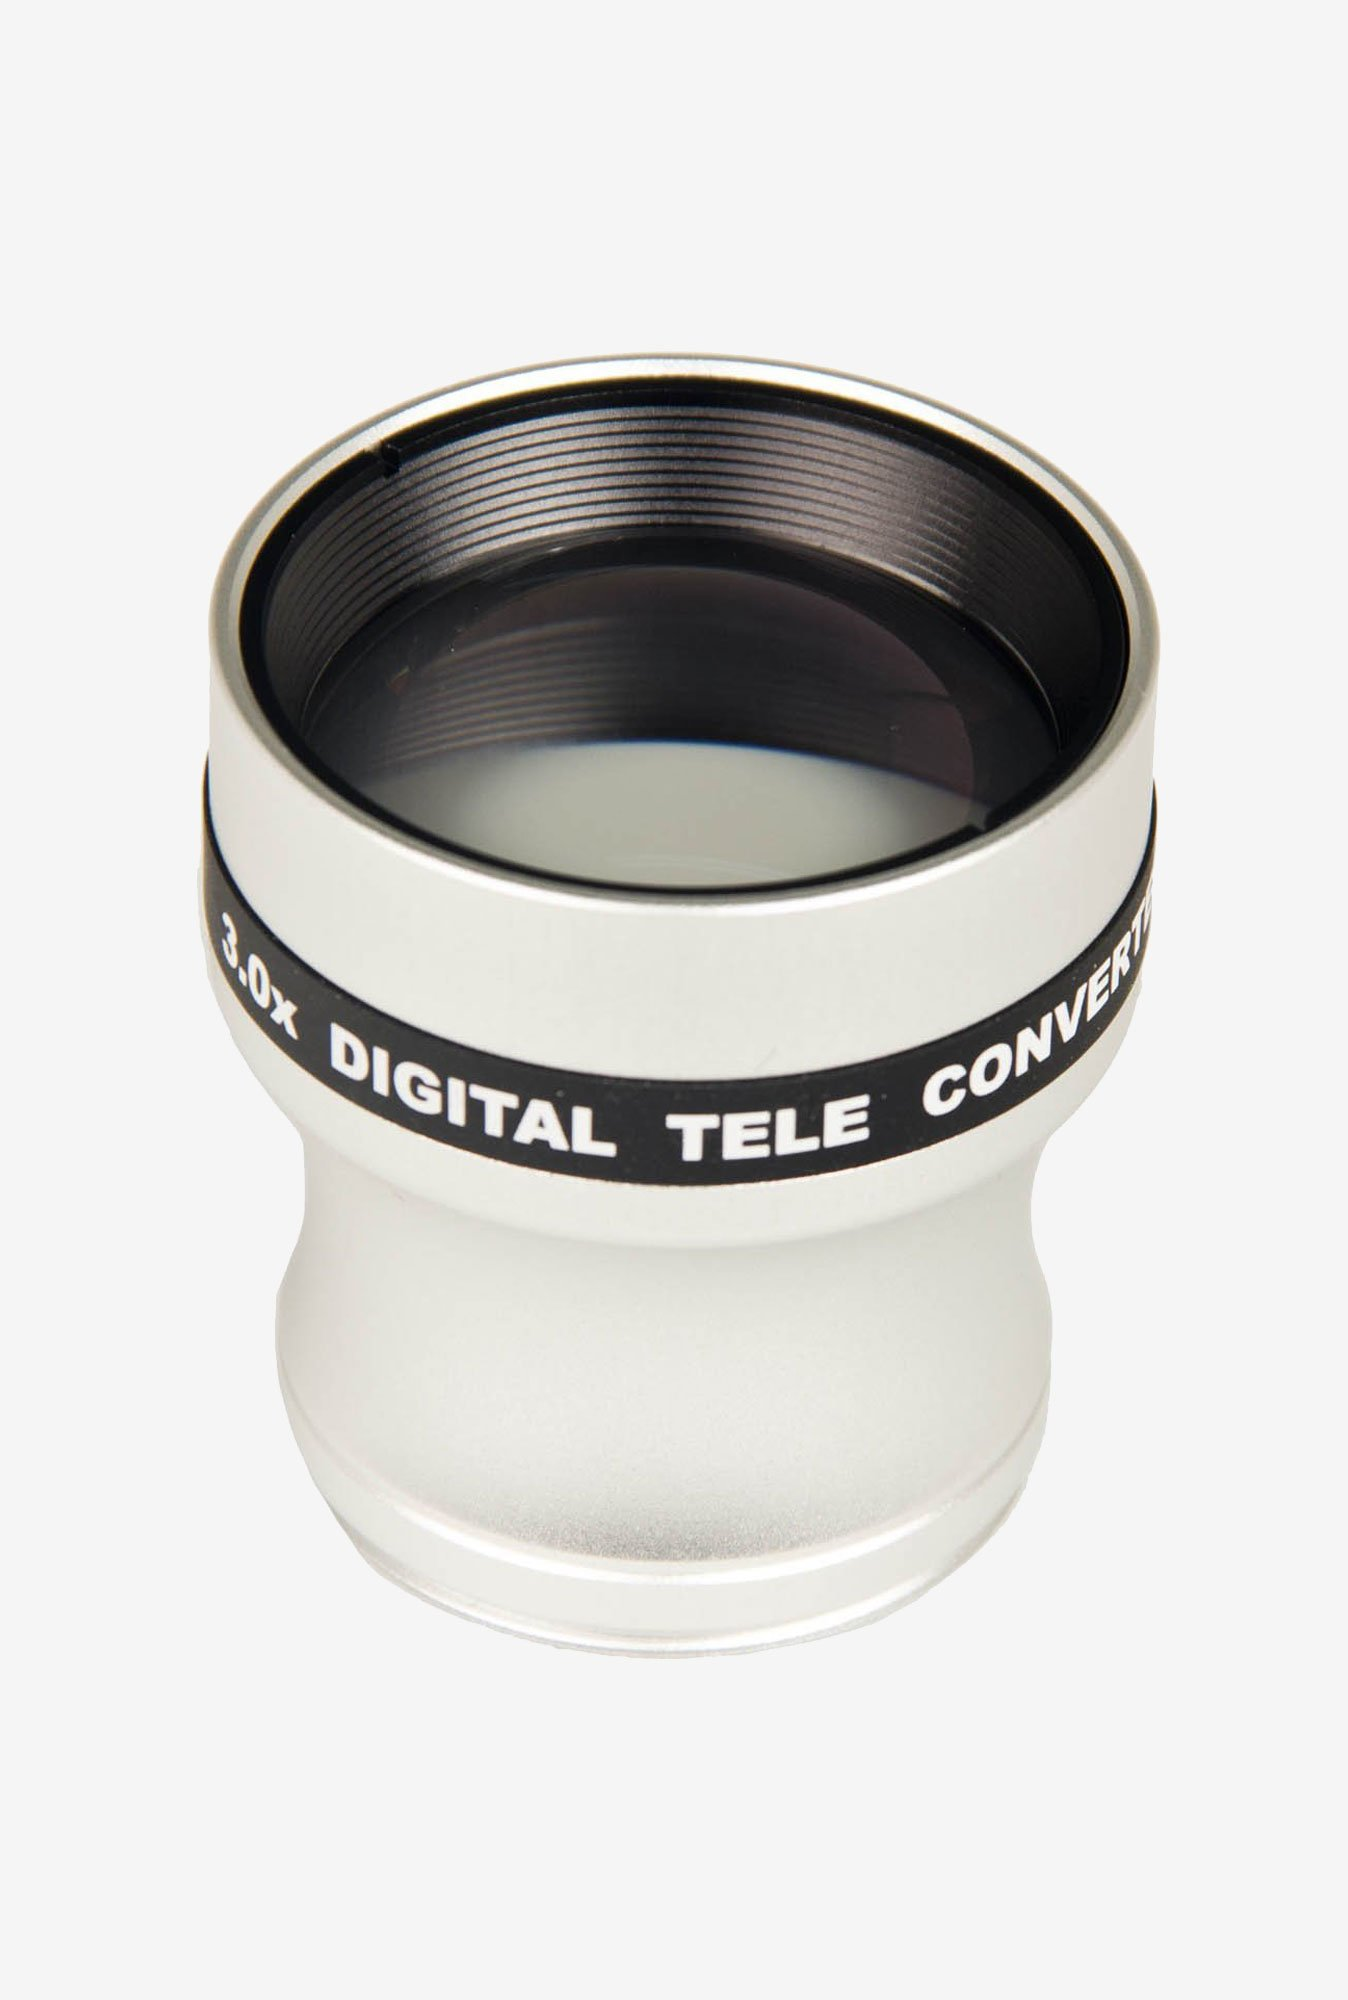 Bower VL337N 3X Telephoto 37mm Conversion Lens (White)